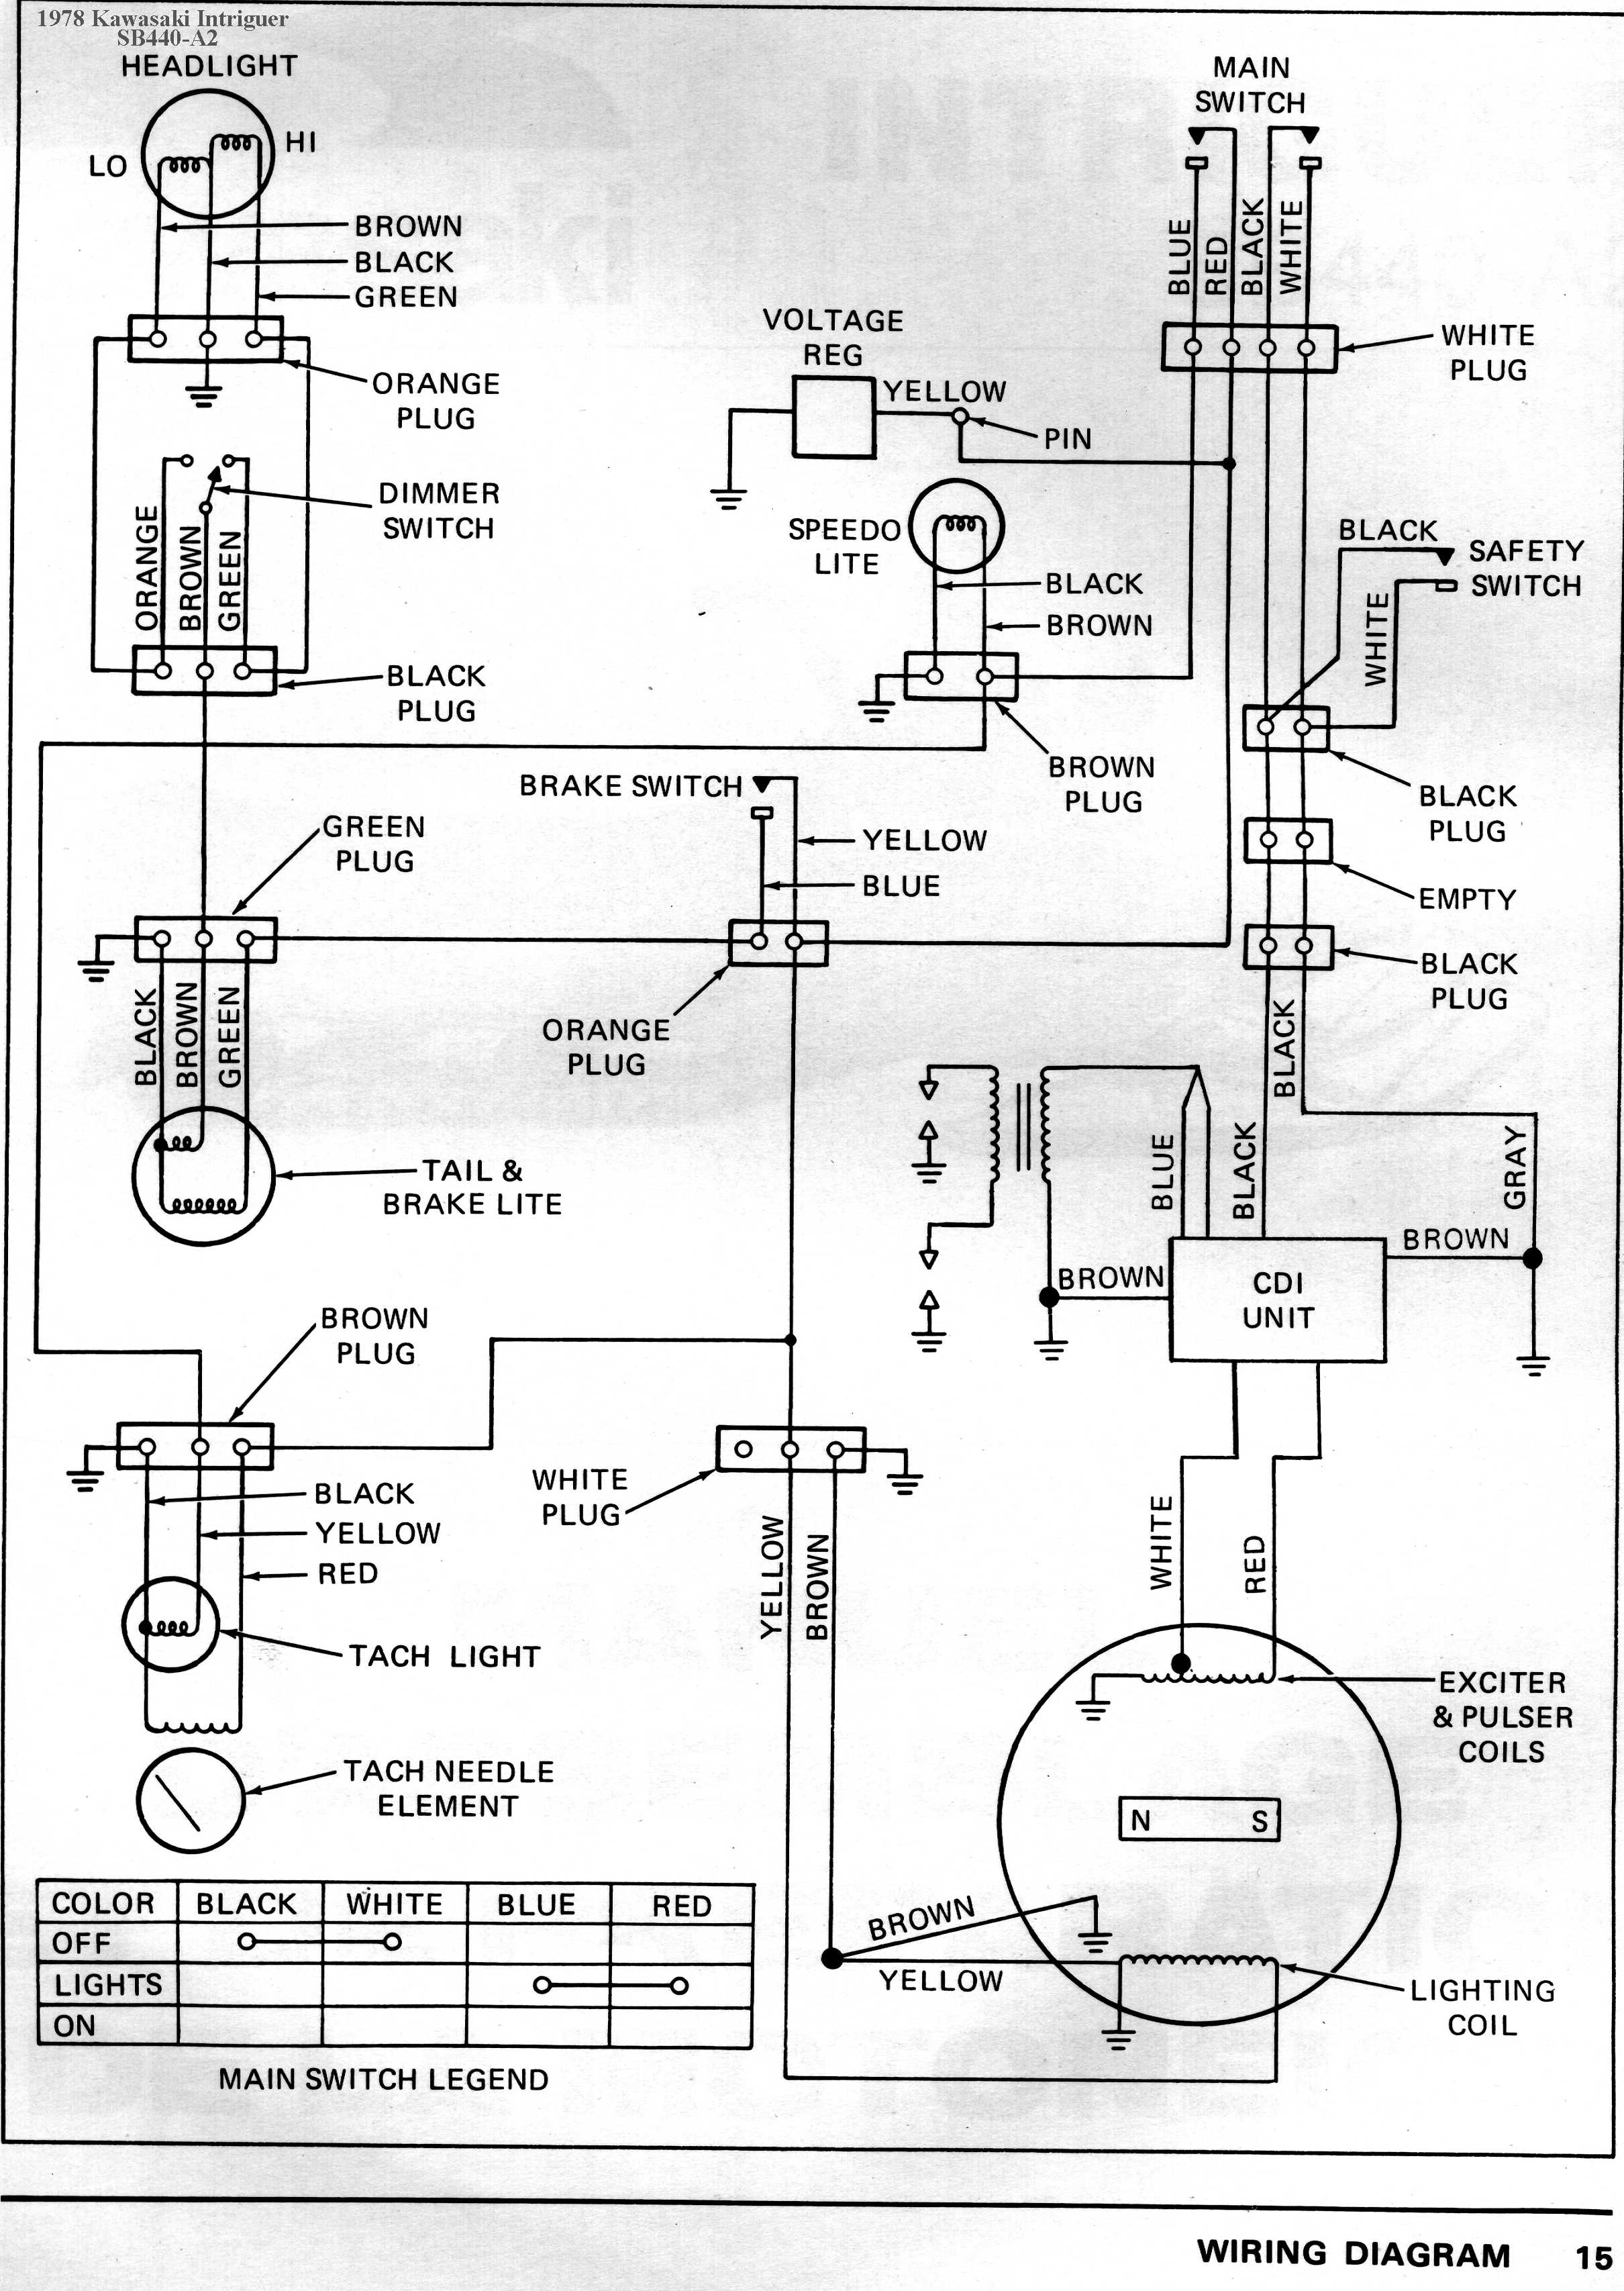 76 ford ltd ignition wiring diagram 1980 kawasaki ltd 440 wiring diagram | wiring library